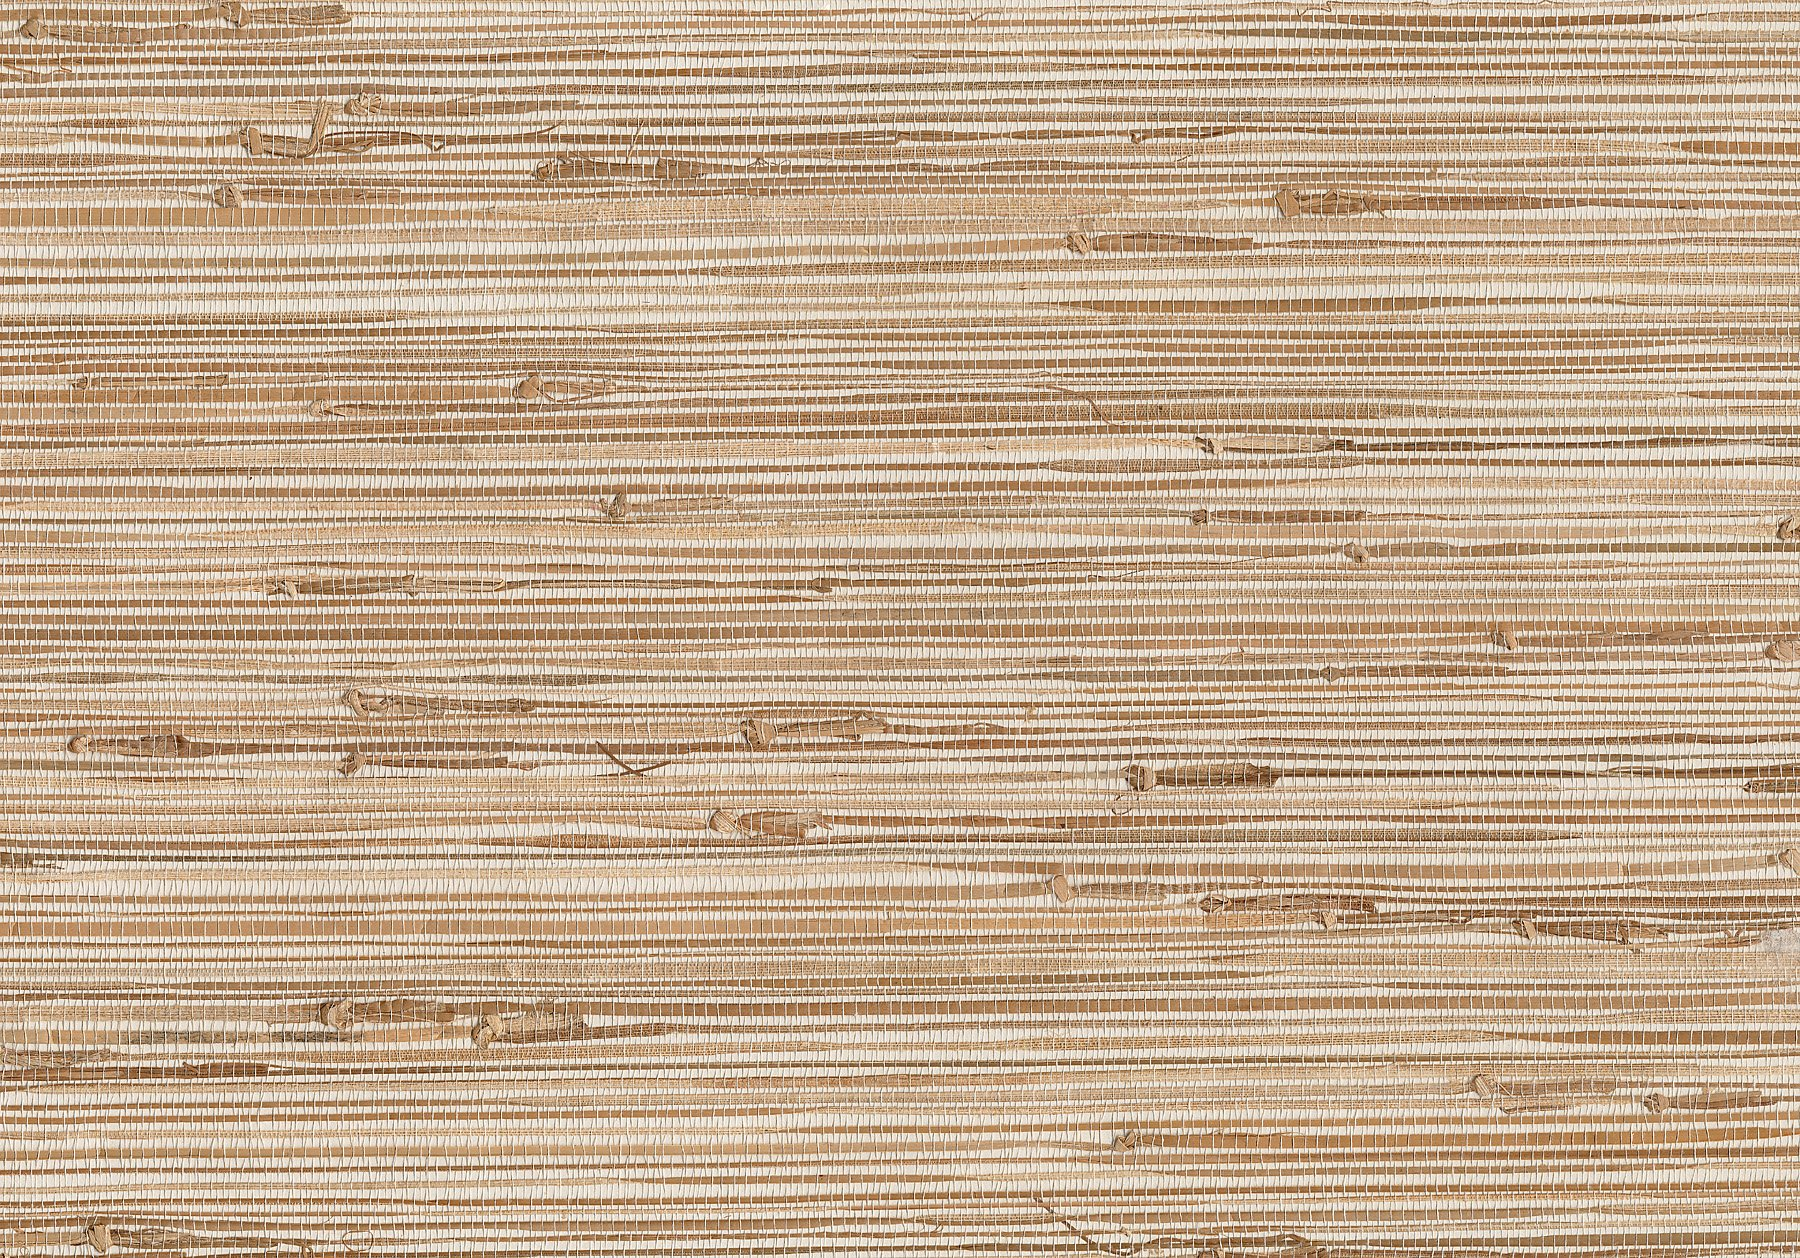 Brewster 53-65601 36-Inch by 288-Inch Kaziko - Hand weaved Grasscloth Wallpaper, Mixed Color